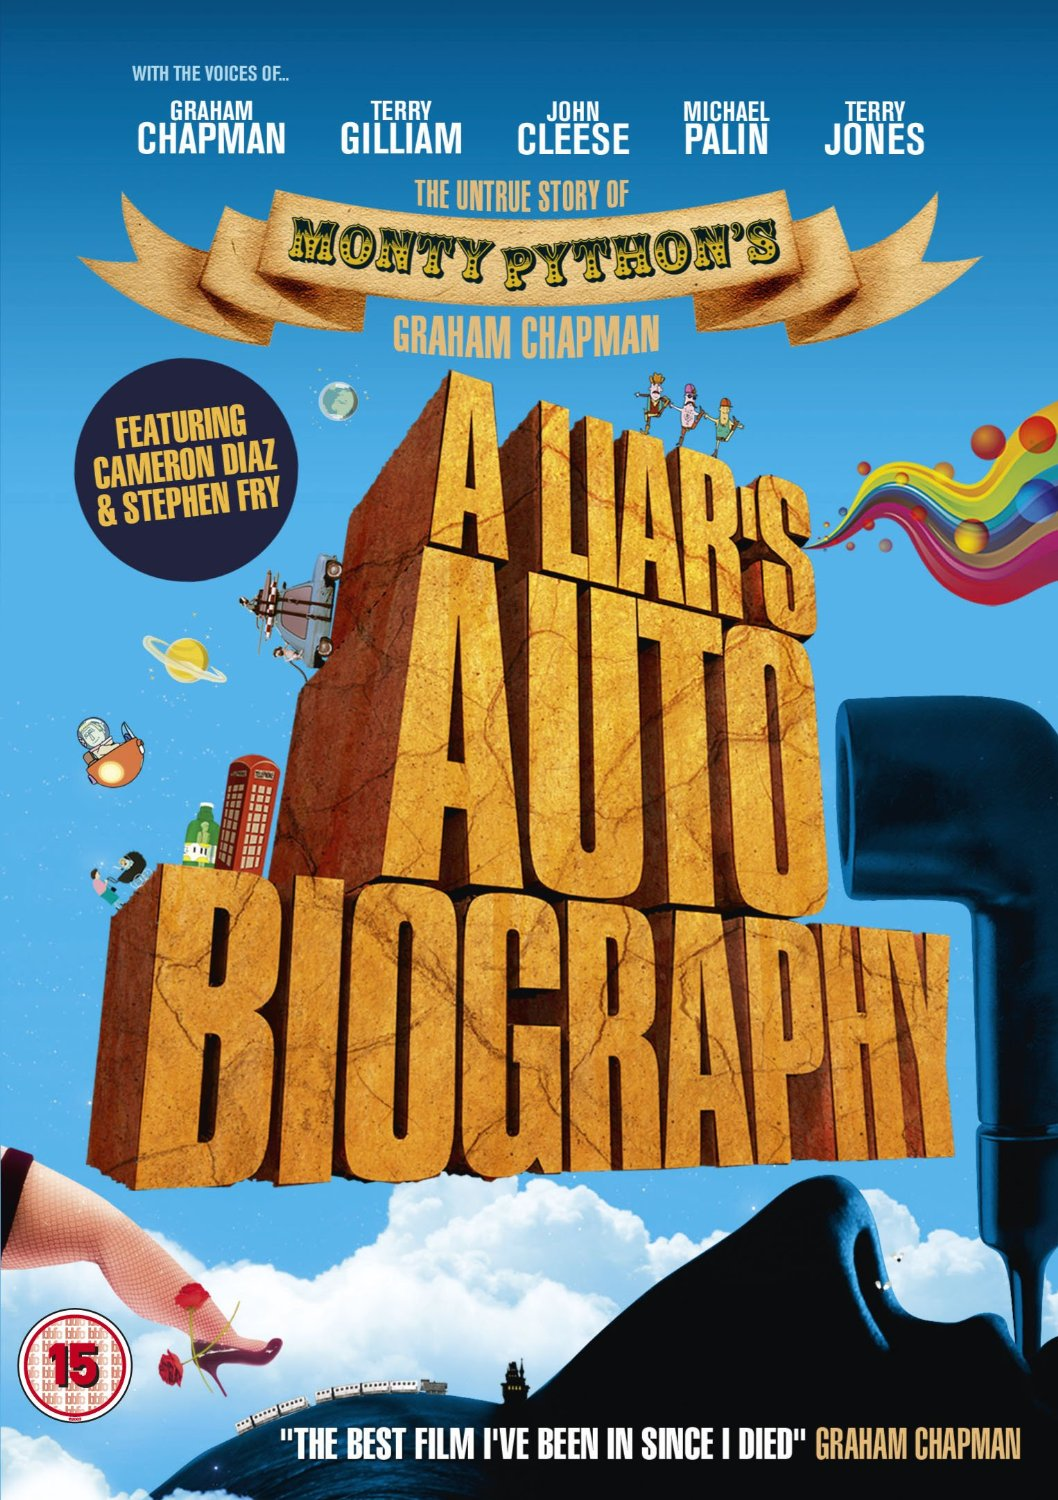 A Liar's Autobiography: The Untrue Story of Monty Python's Graham Chapman (2012)